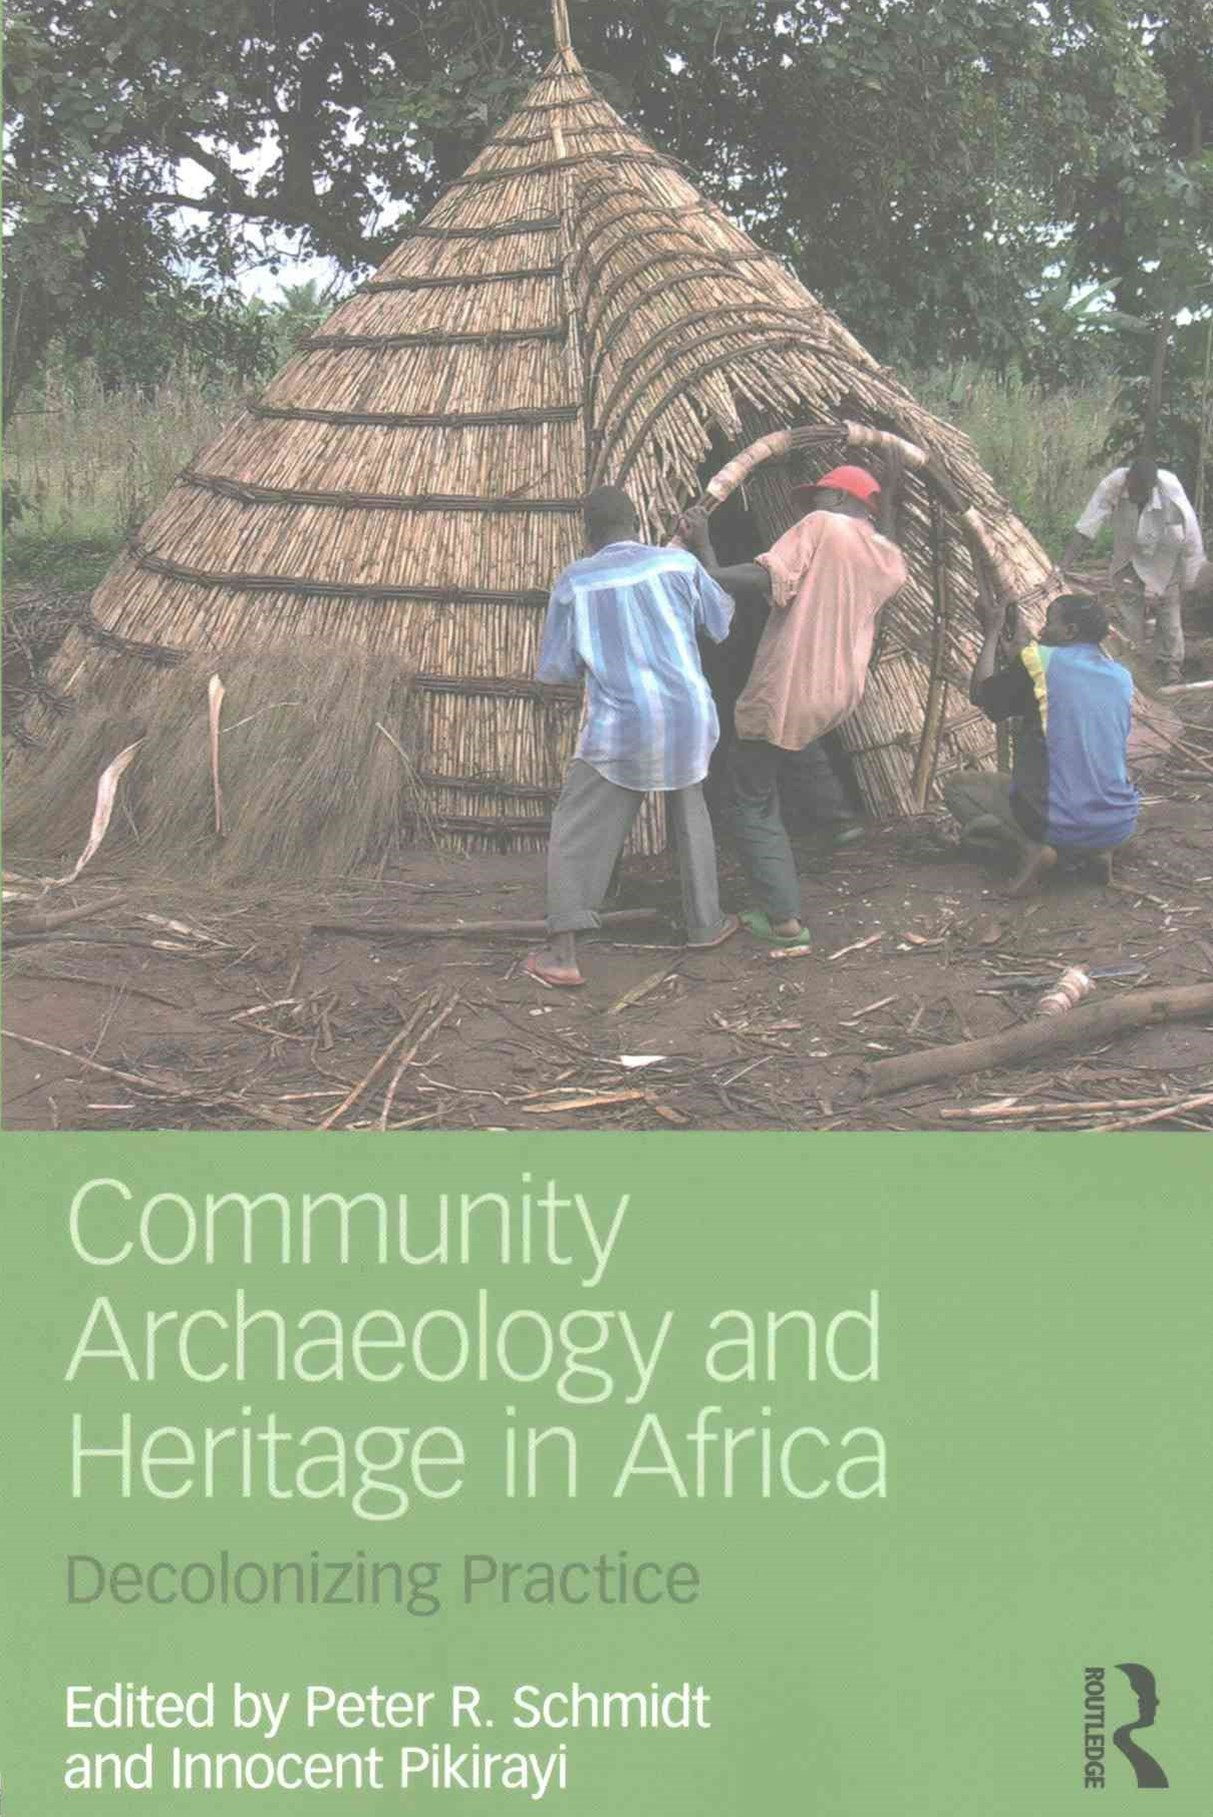 Community Archaeology and Heritage in Africa